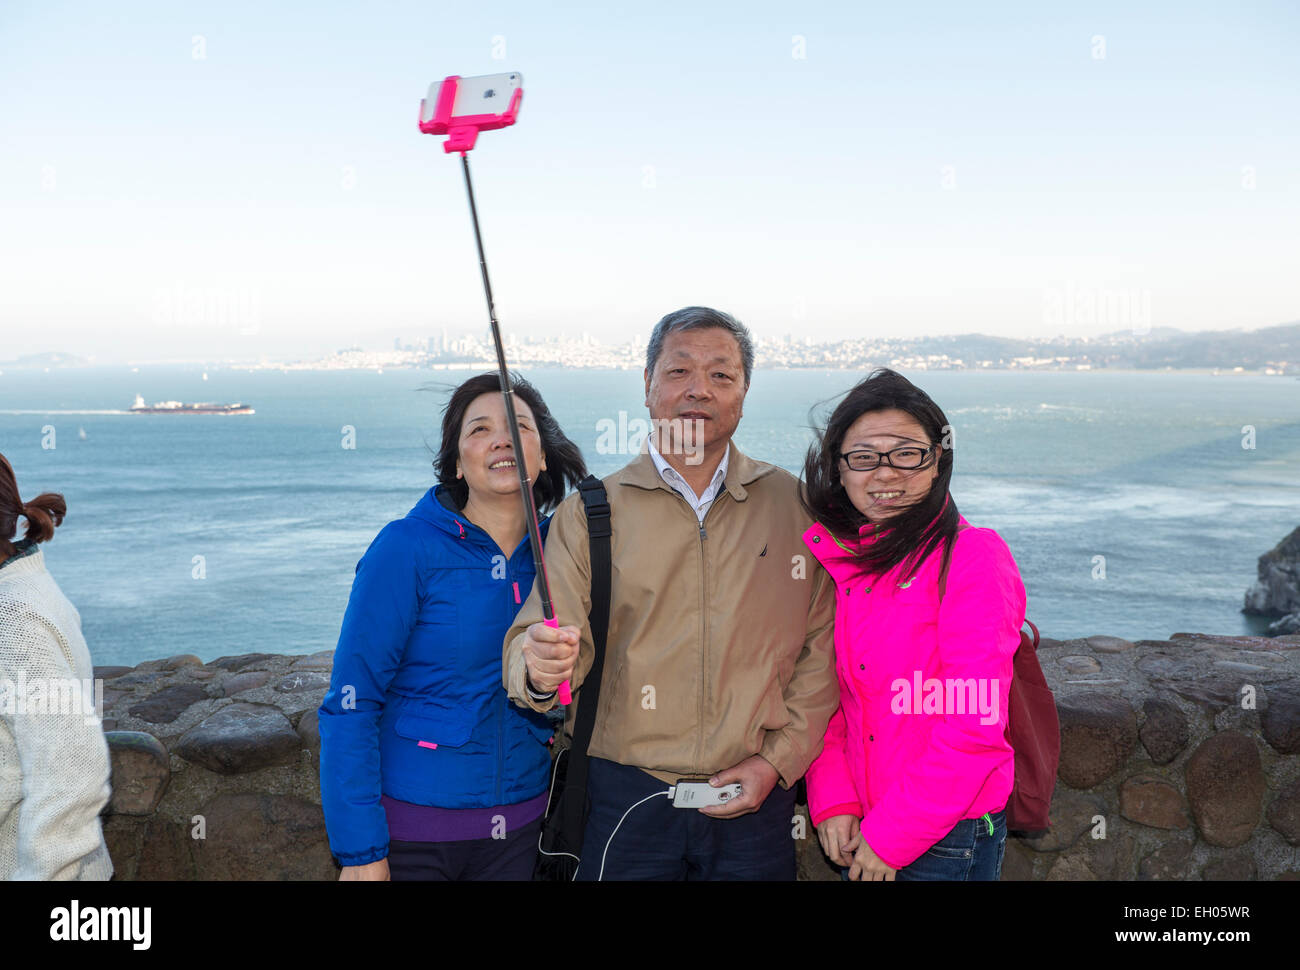 Touristen, Familien, unter Selfie, Selfie Foto, Selfie stick, Vista Point, nördlich der Golden Gate Bridge, Stockbild